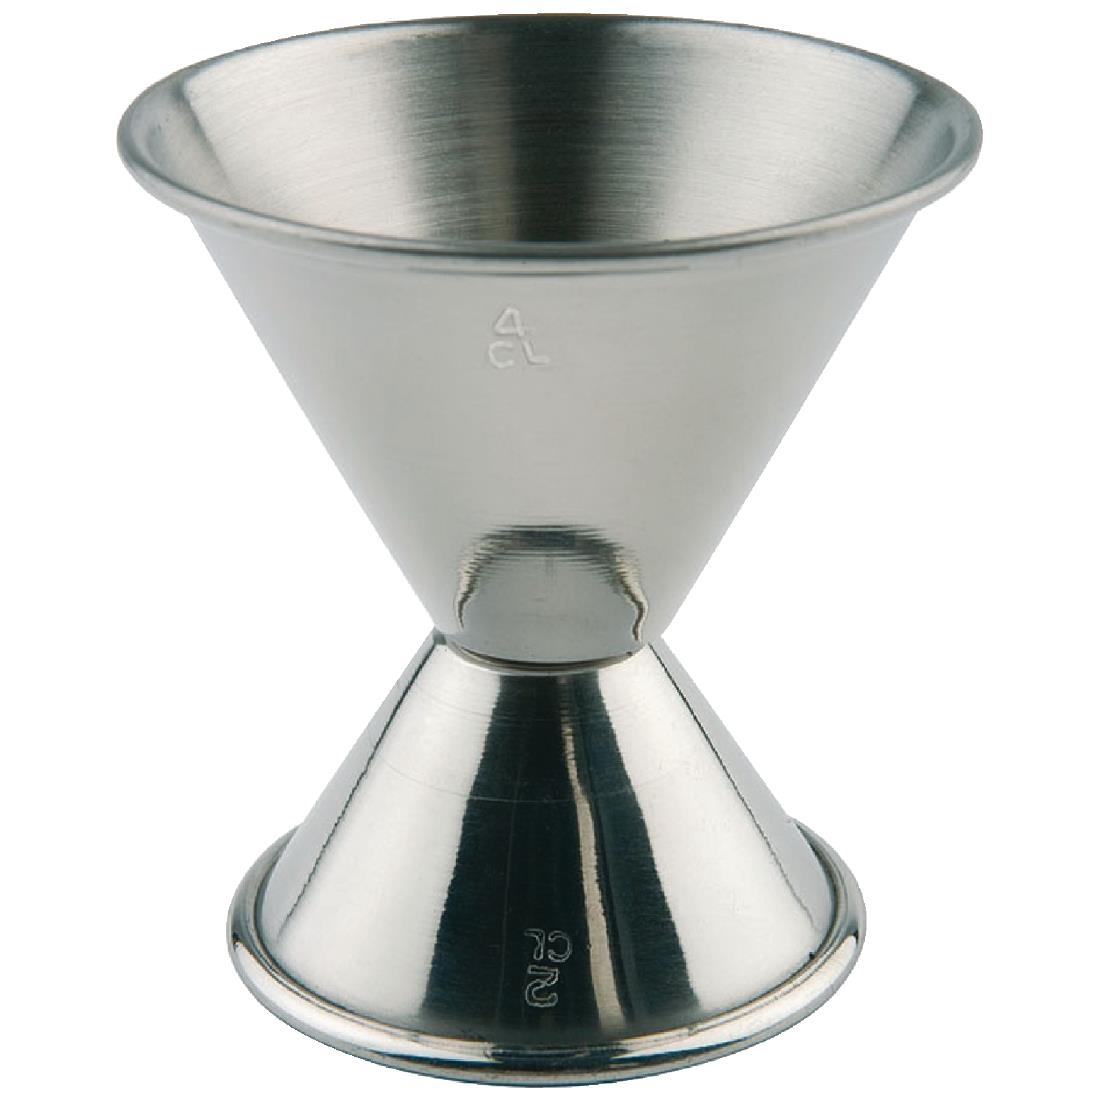 Image of APS Compact Cocktail Jigger